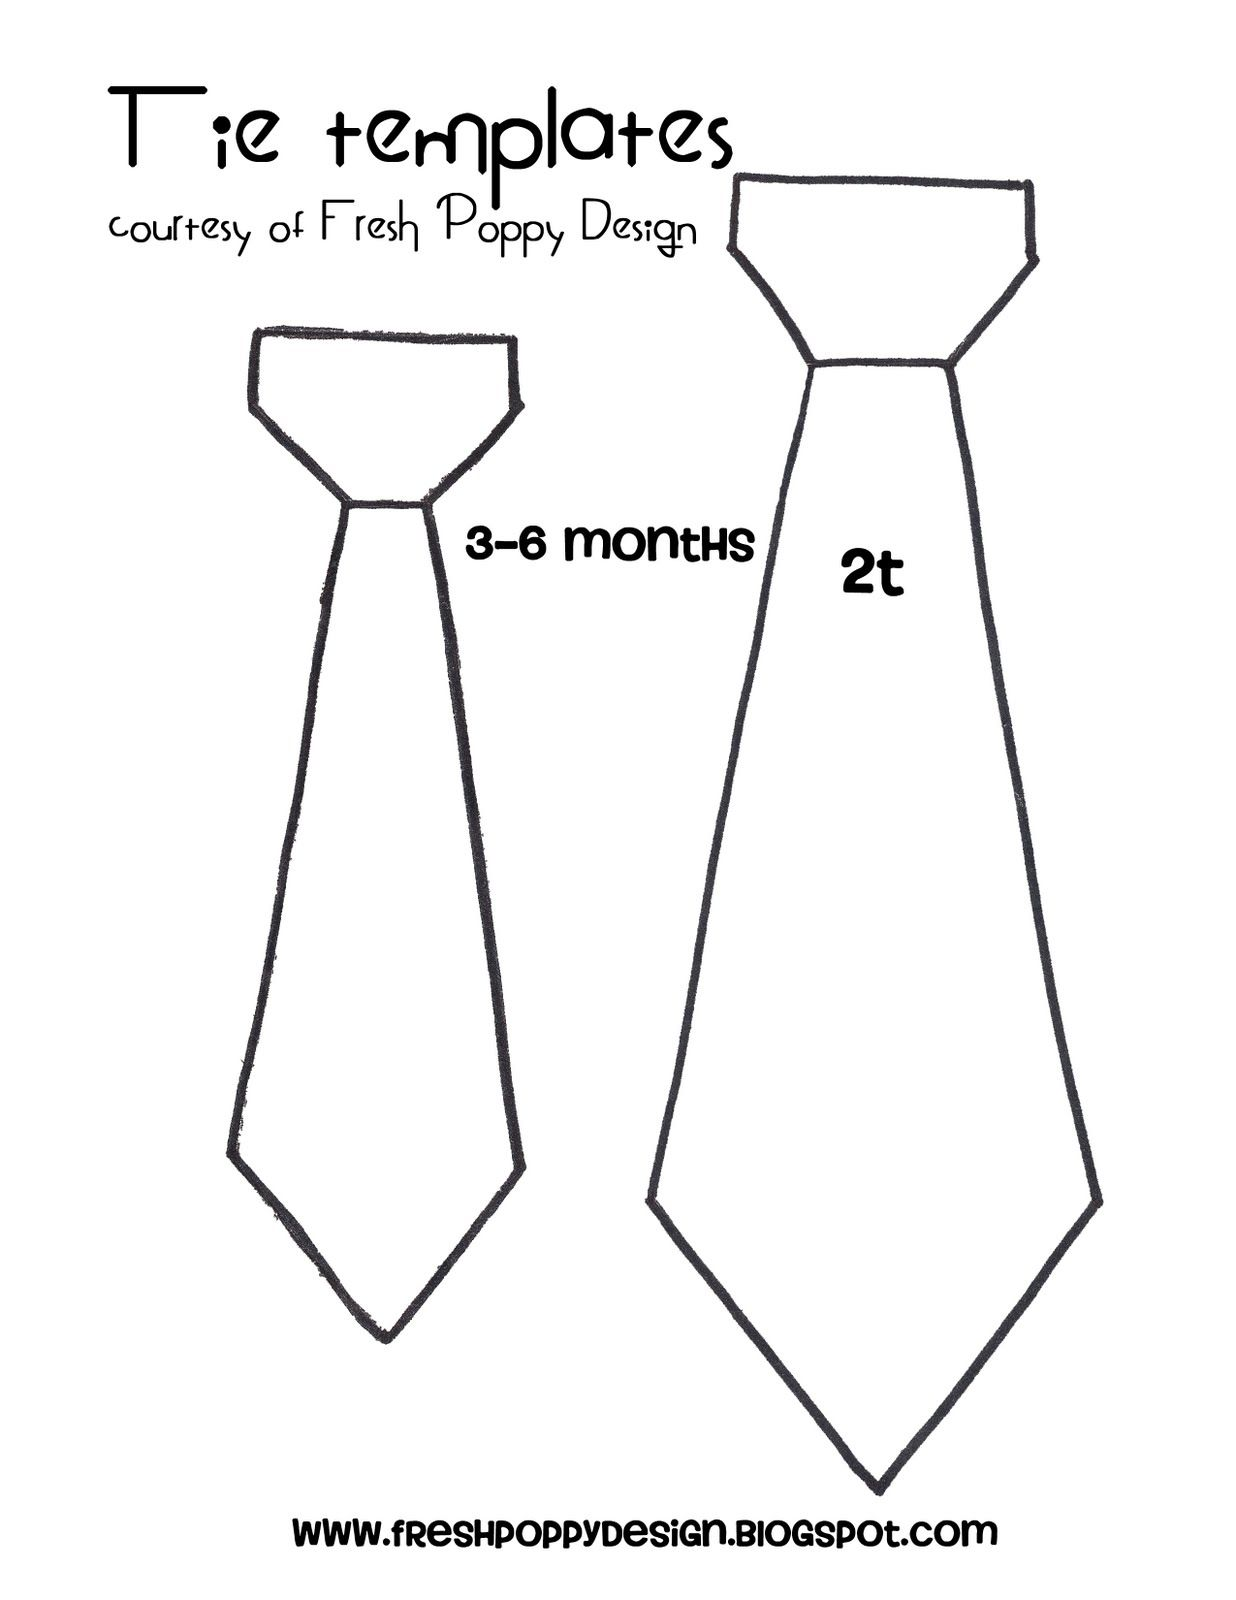 tie template!! Def going to use this. :)